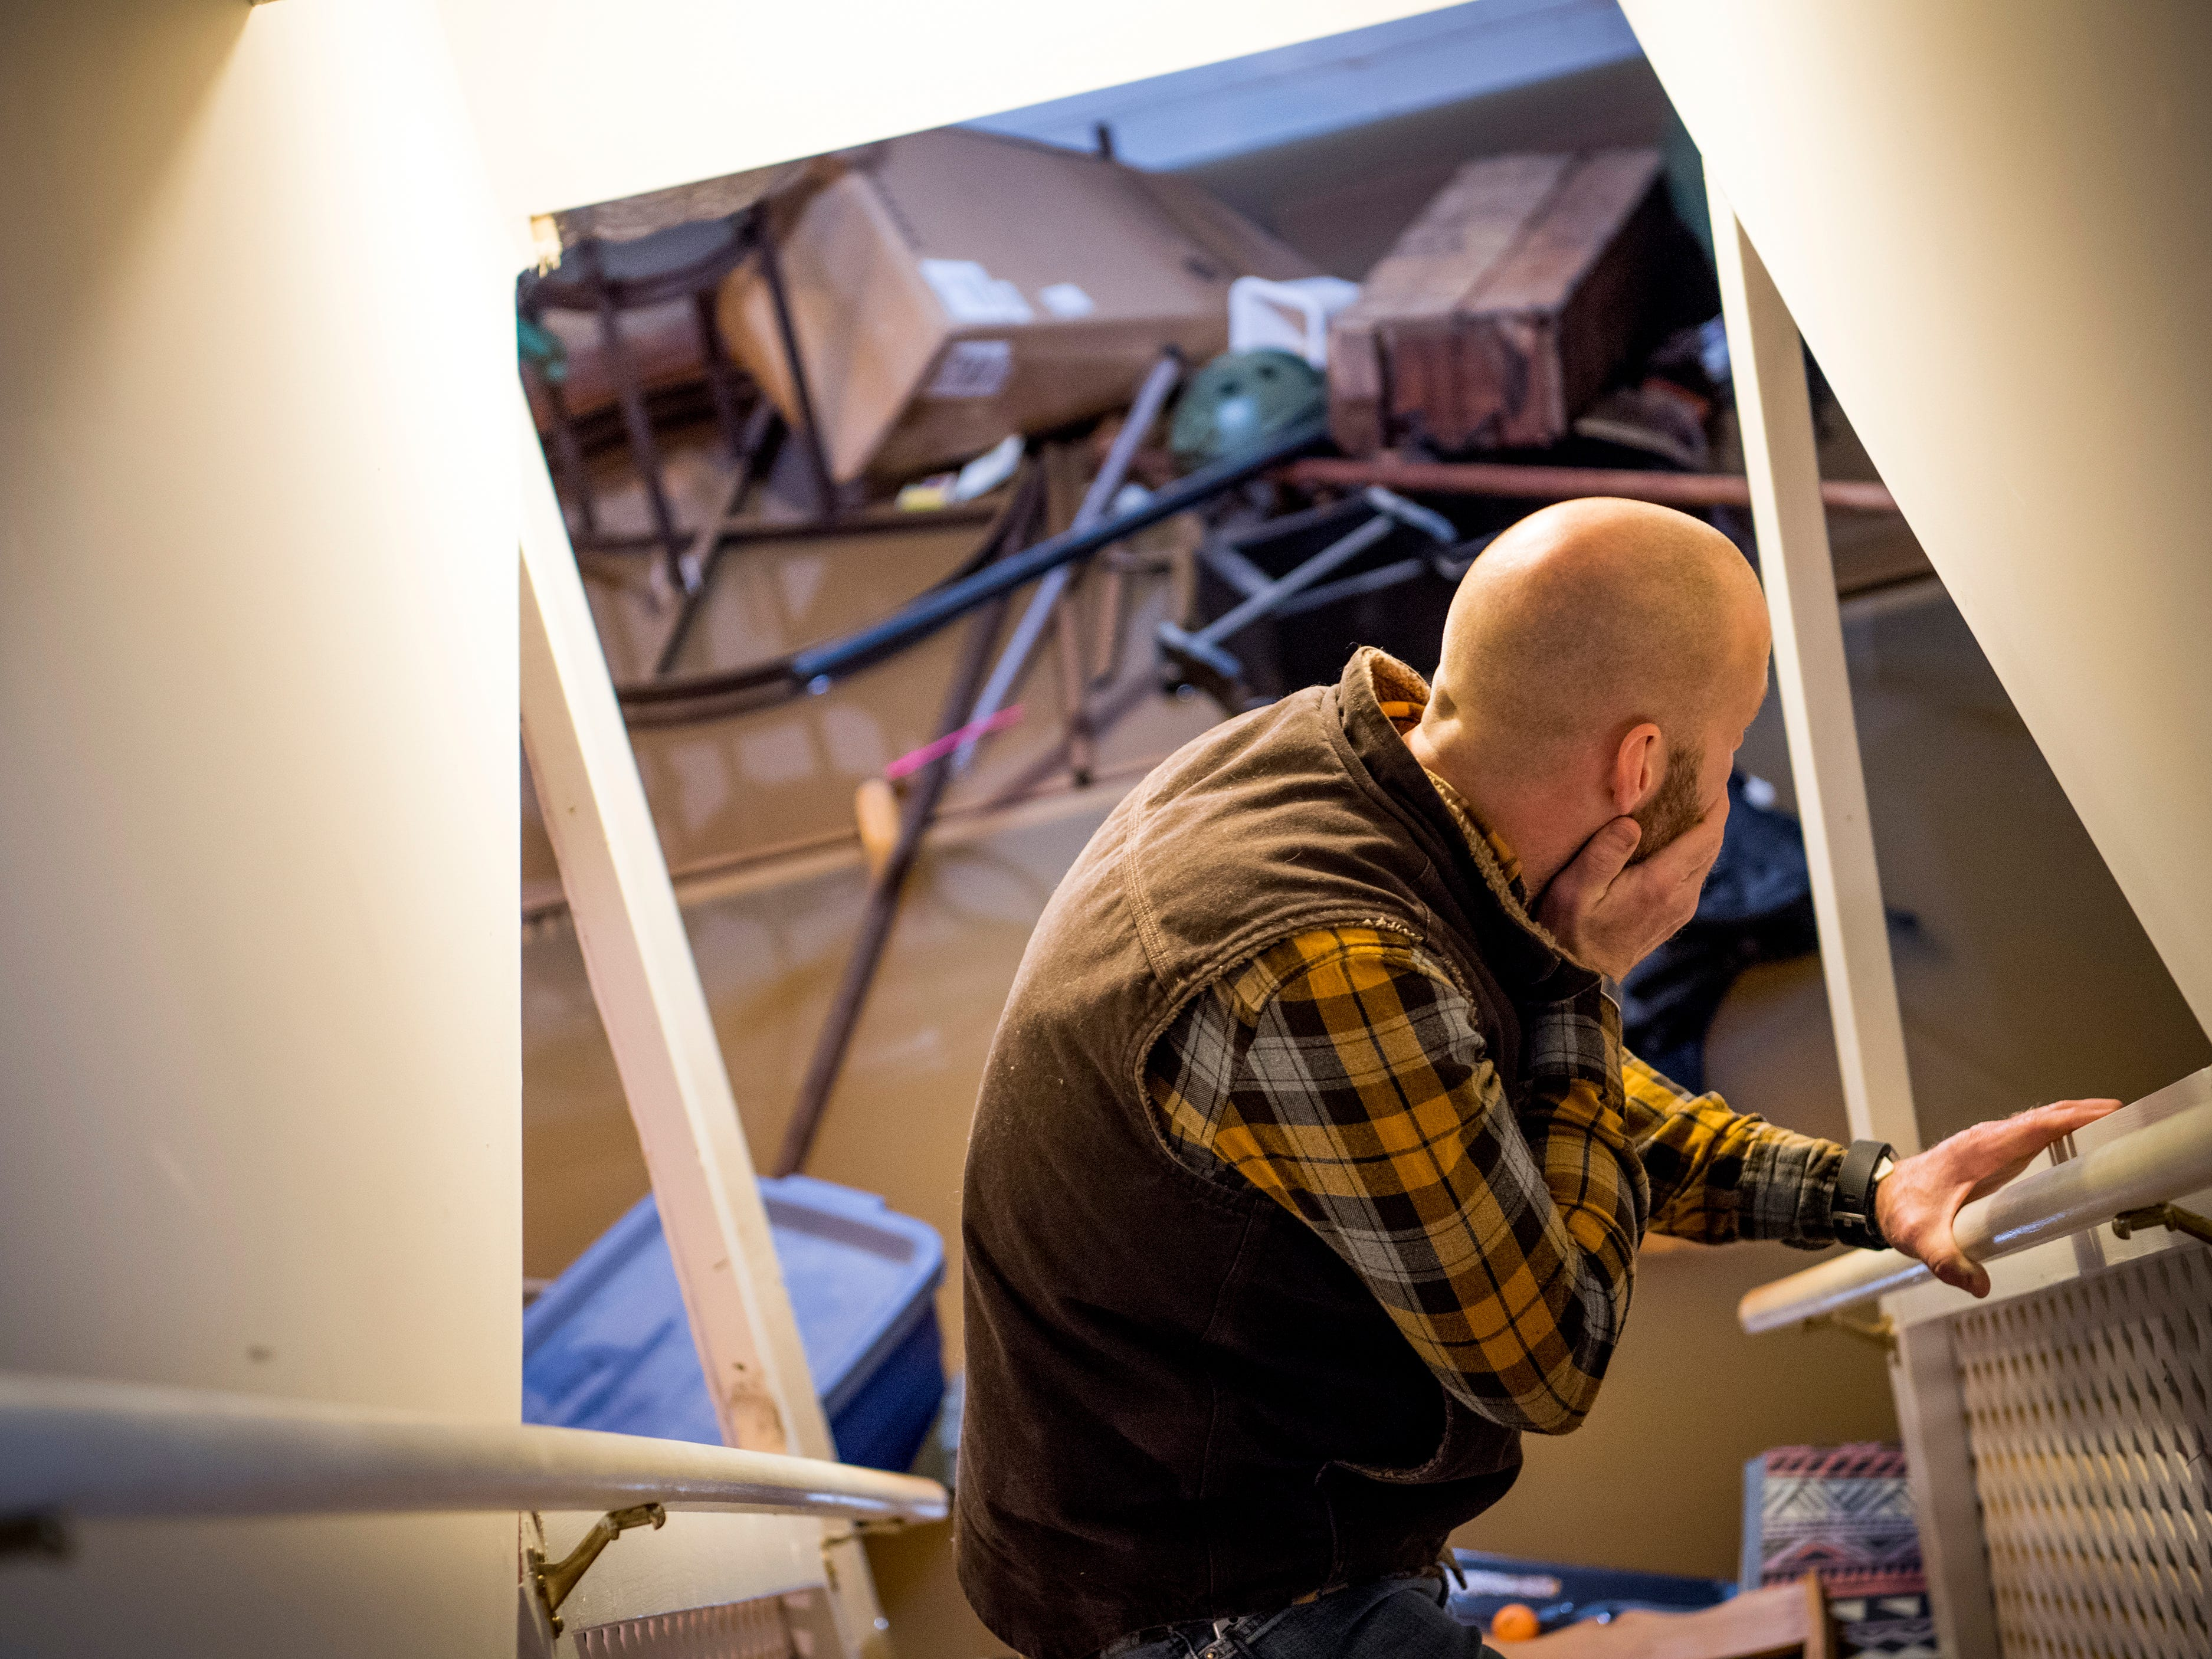 Jeff Macklin rubs his face as he realizes certain items were in his basement when it flooded while surveying his basement on Monday, February 25, 2019. Macklin lives in the Lennox Place subdivision off of Ebenezer Road in Knoxville, and parts of Ebenezer Road were still under several feet of water on Monday afternoon.